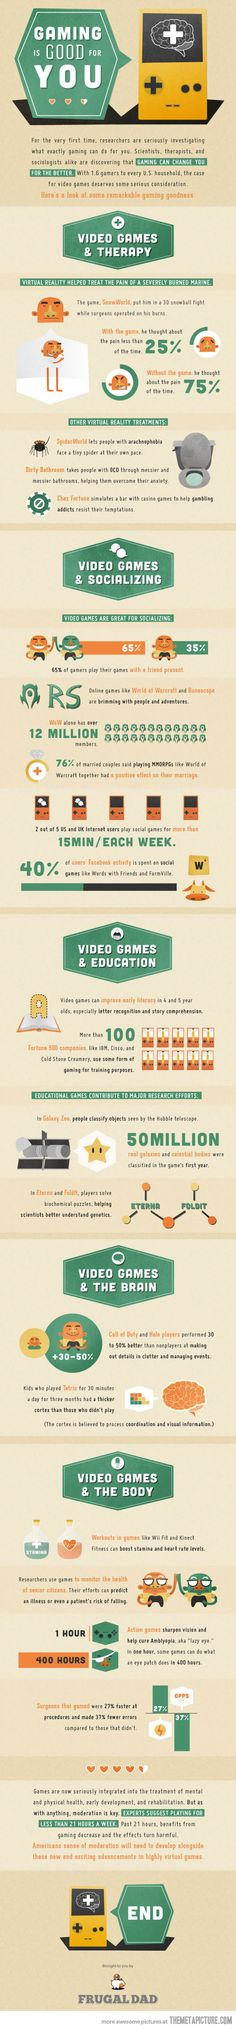 Gaming is good for you ( I knew it )